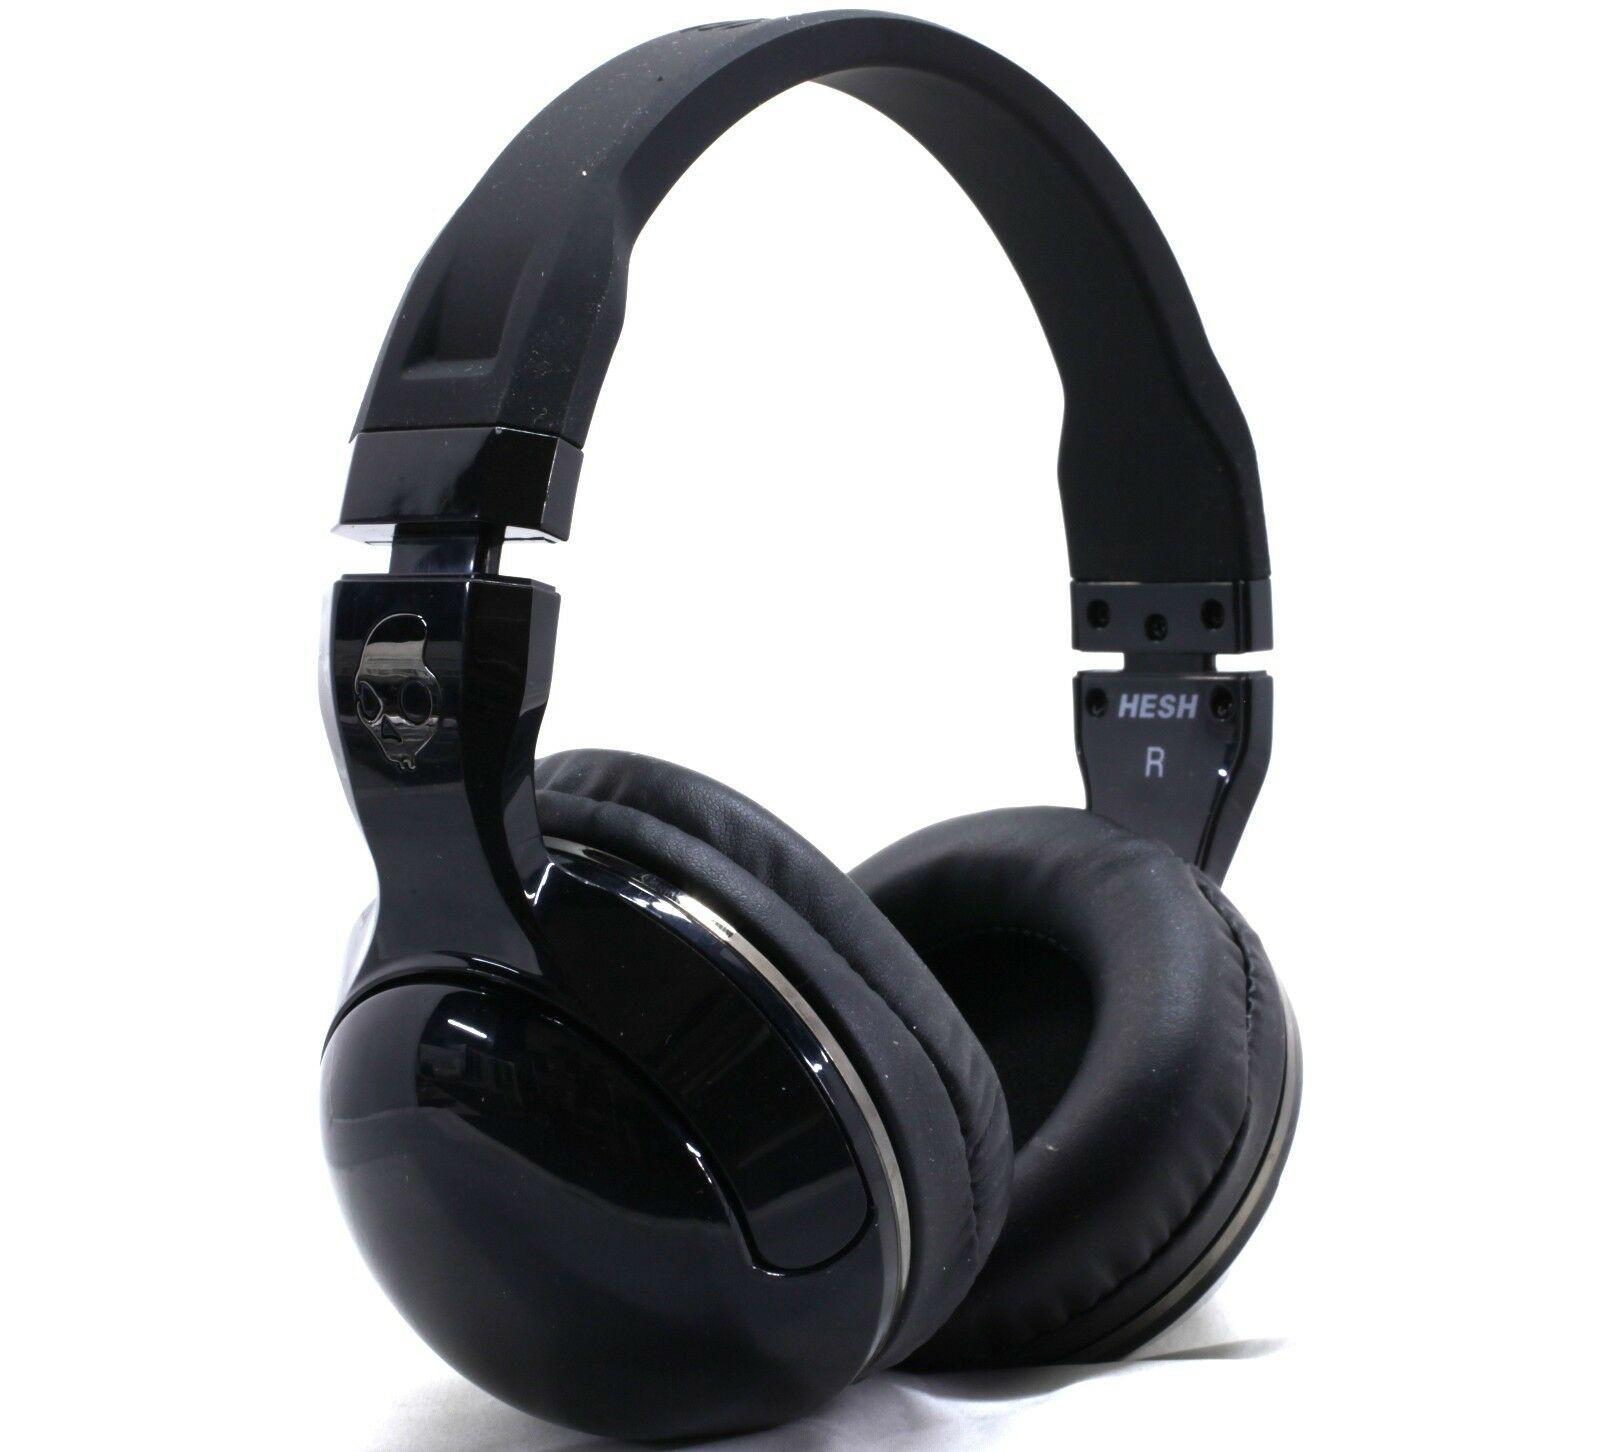 Headphones - Skullcandy Hesh 2 New Supreme Sound Headphones with Mic and Pouch Black